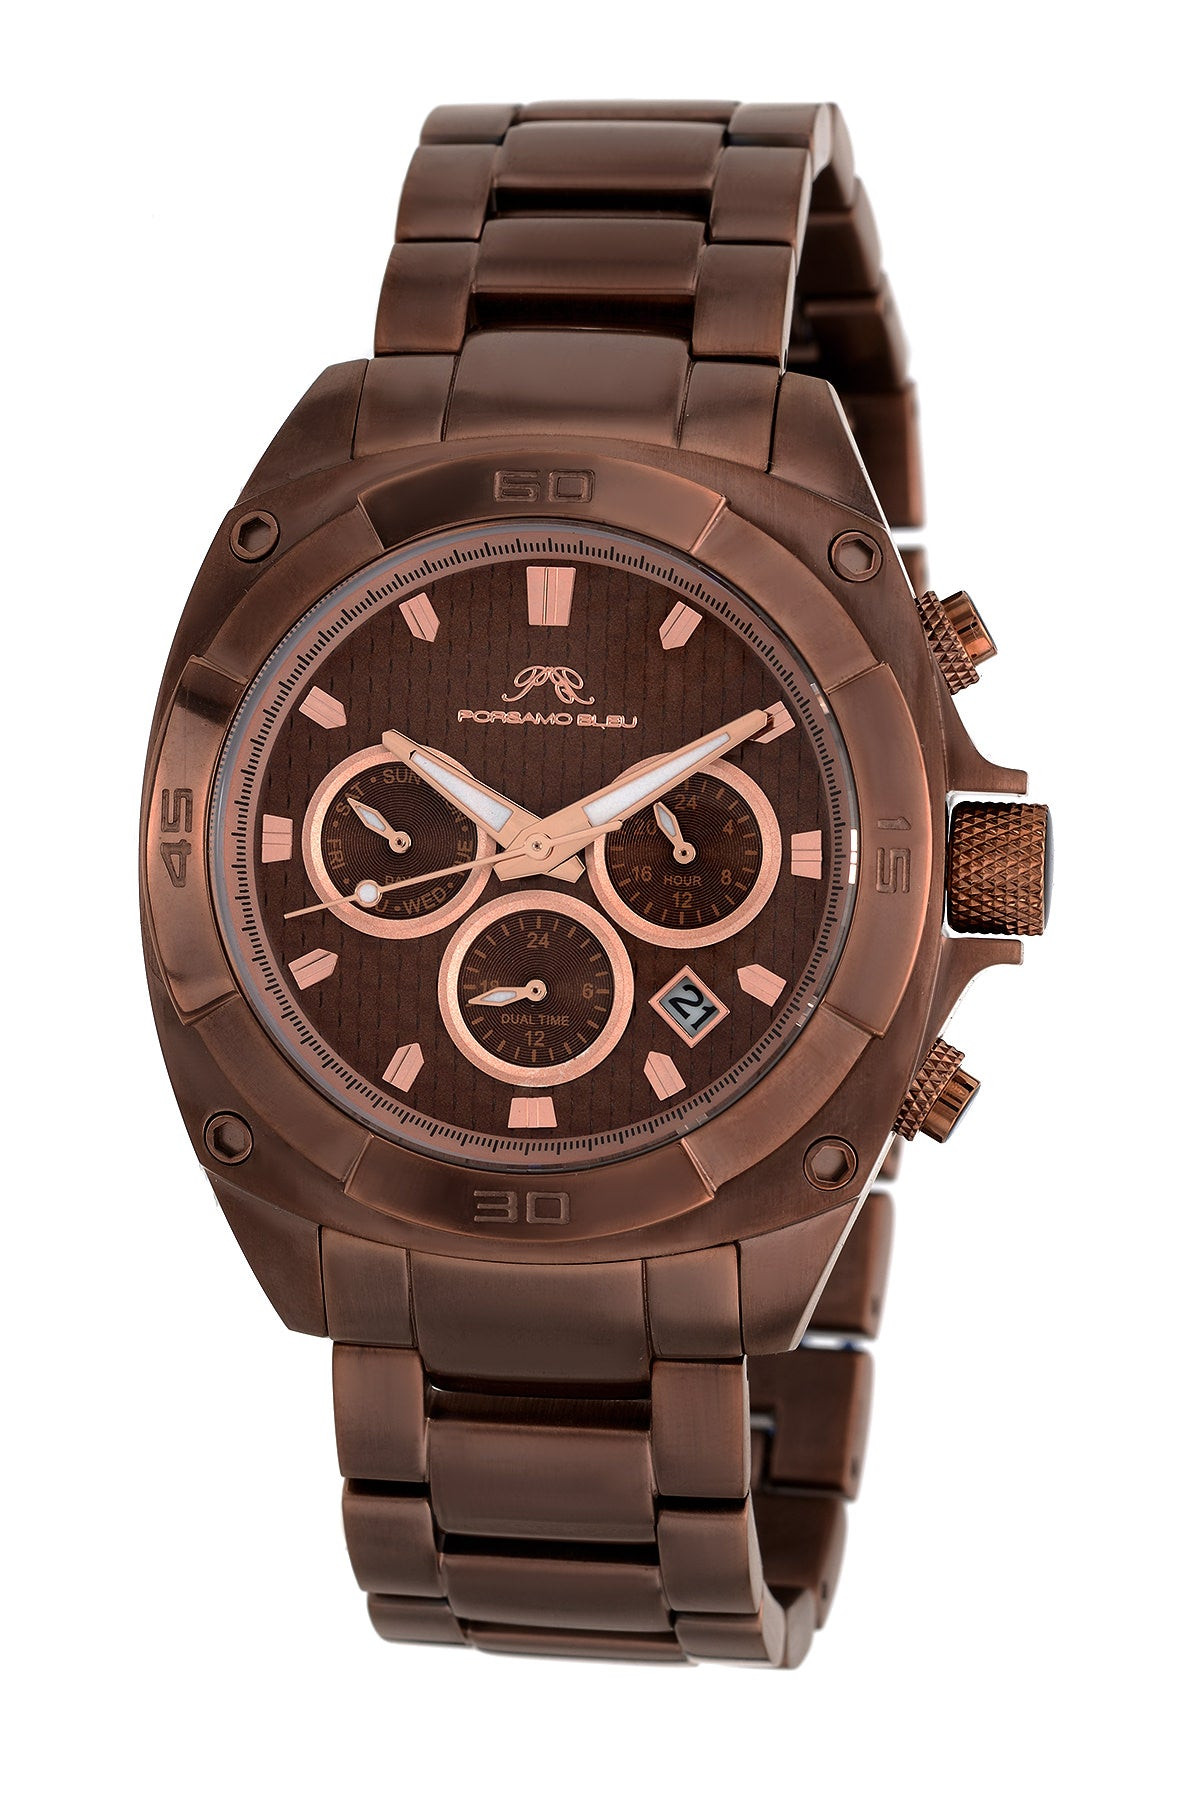 Porsamo Bleu Alex luxury men's stainless steel watch, brown 291DALS